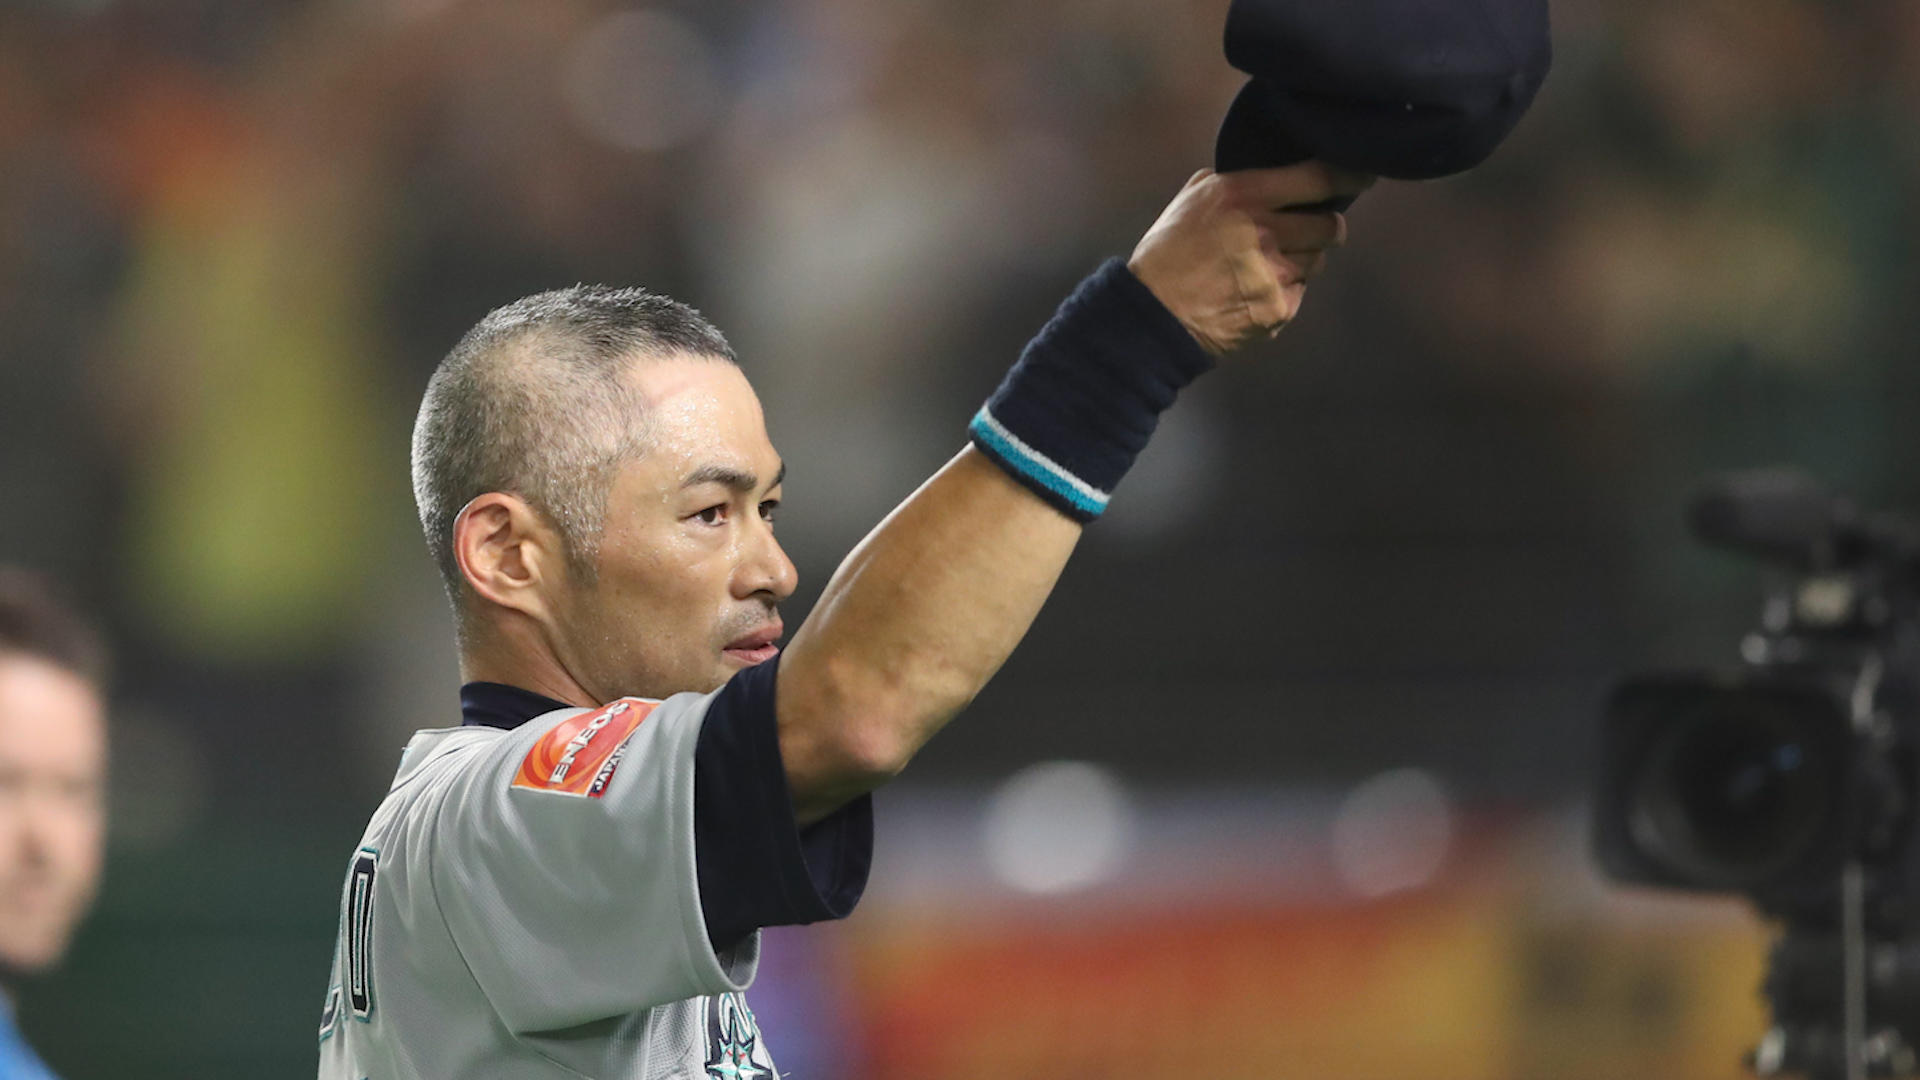 Ichiro Suzuki retires following Mariners series in Japan: 'I have achieved so many of my dreams in baseball'